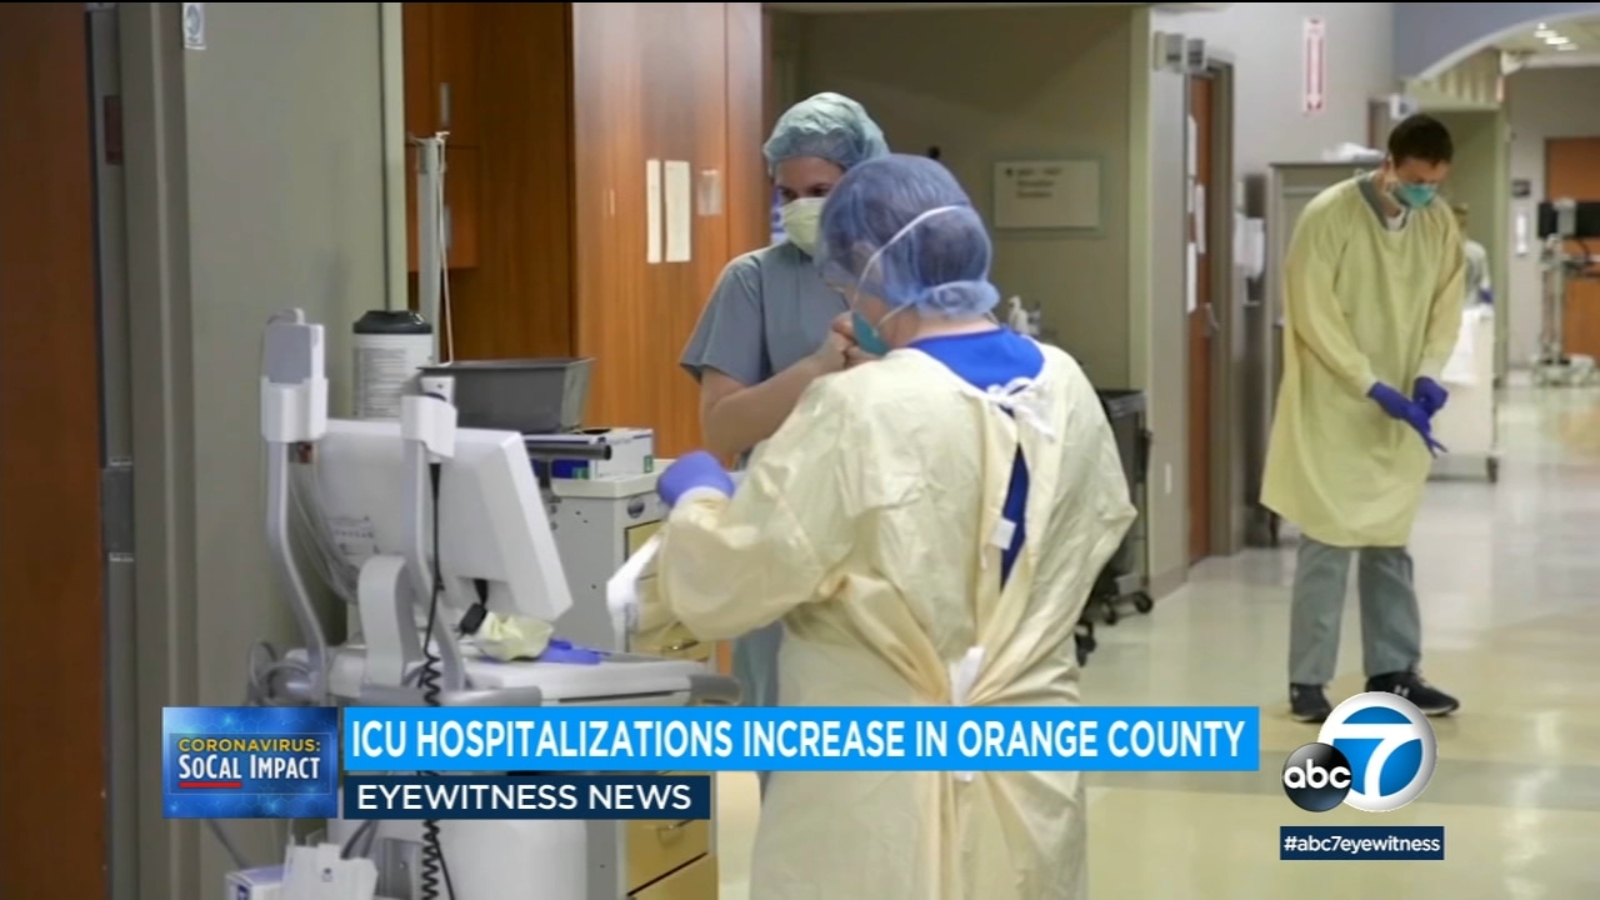 'Alarming increase': COVID hospitalizations up 366% in 1-month period in LA County as virus surges